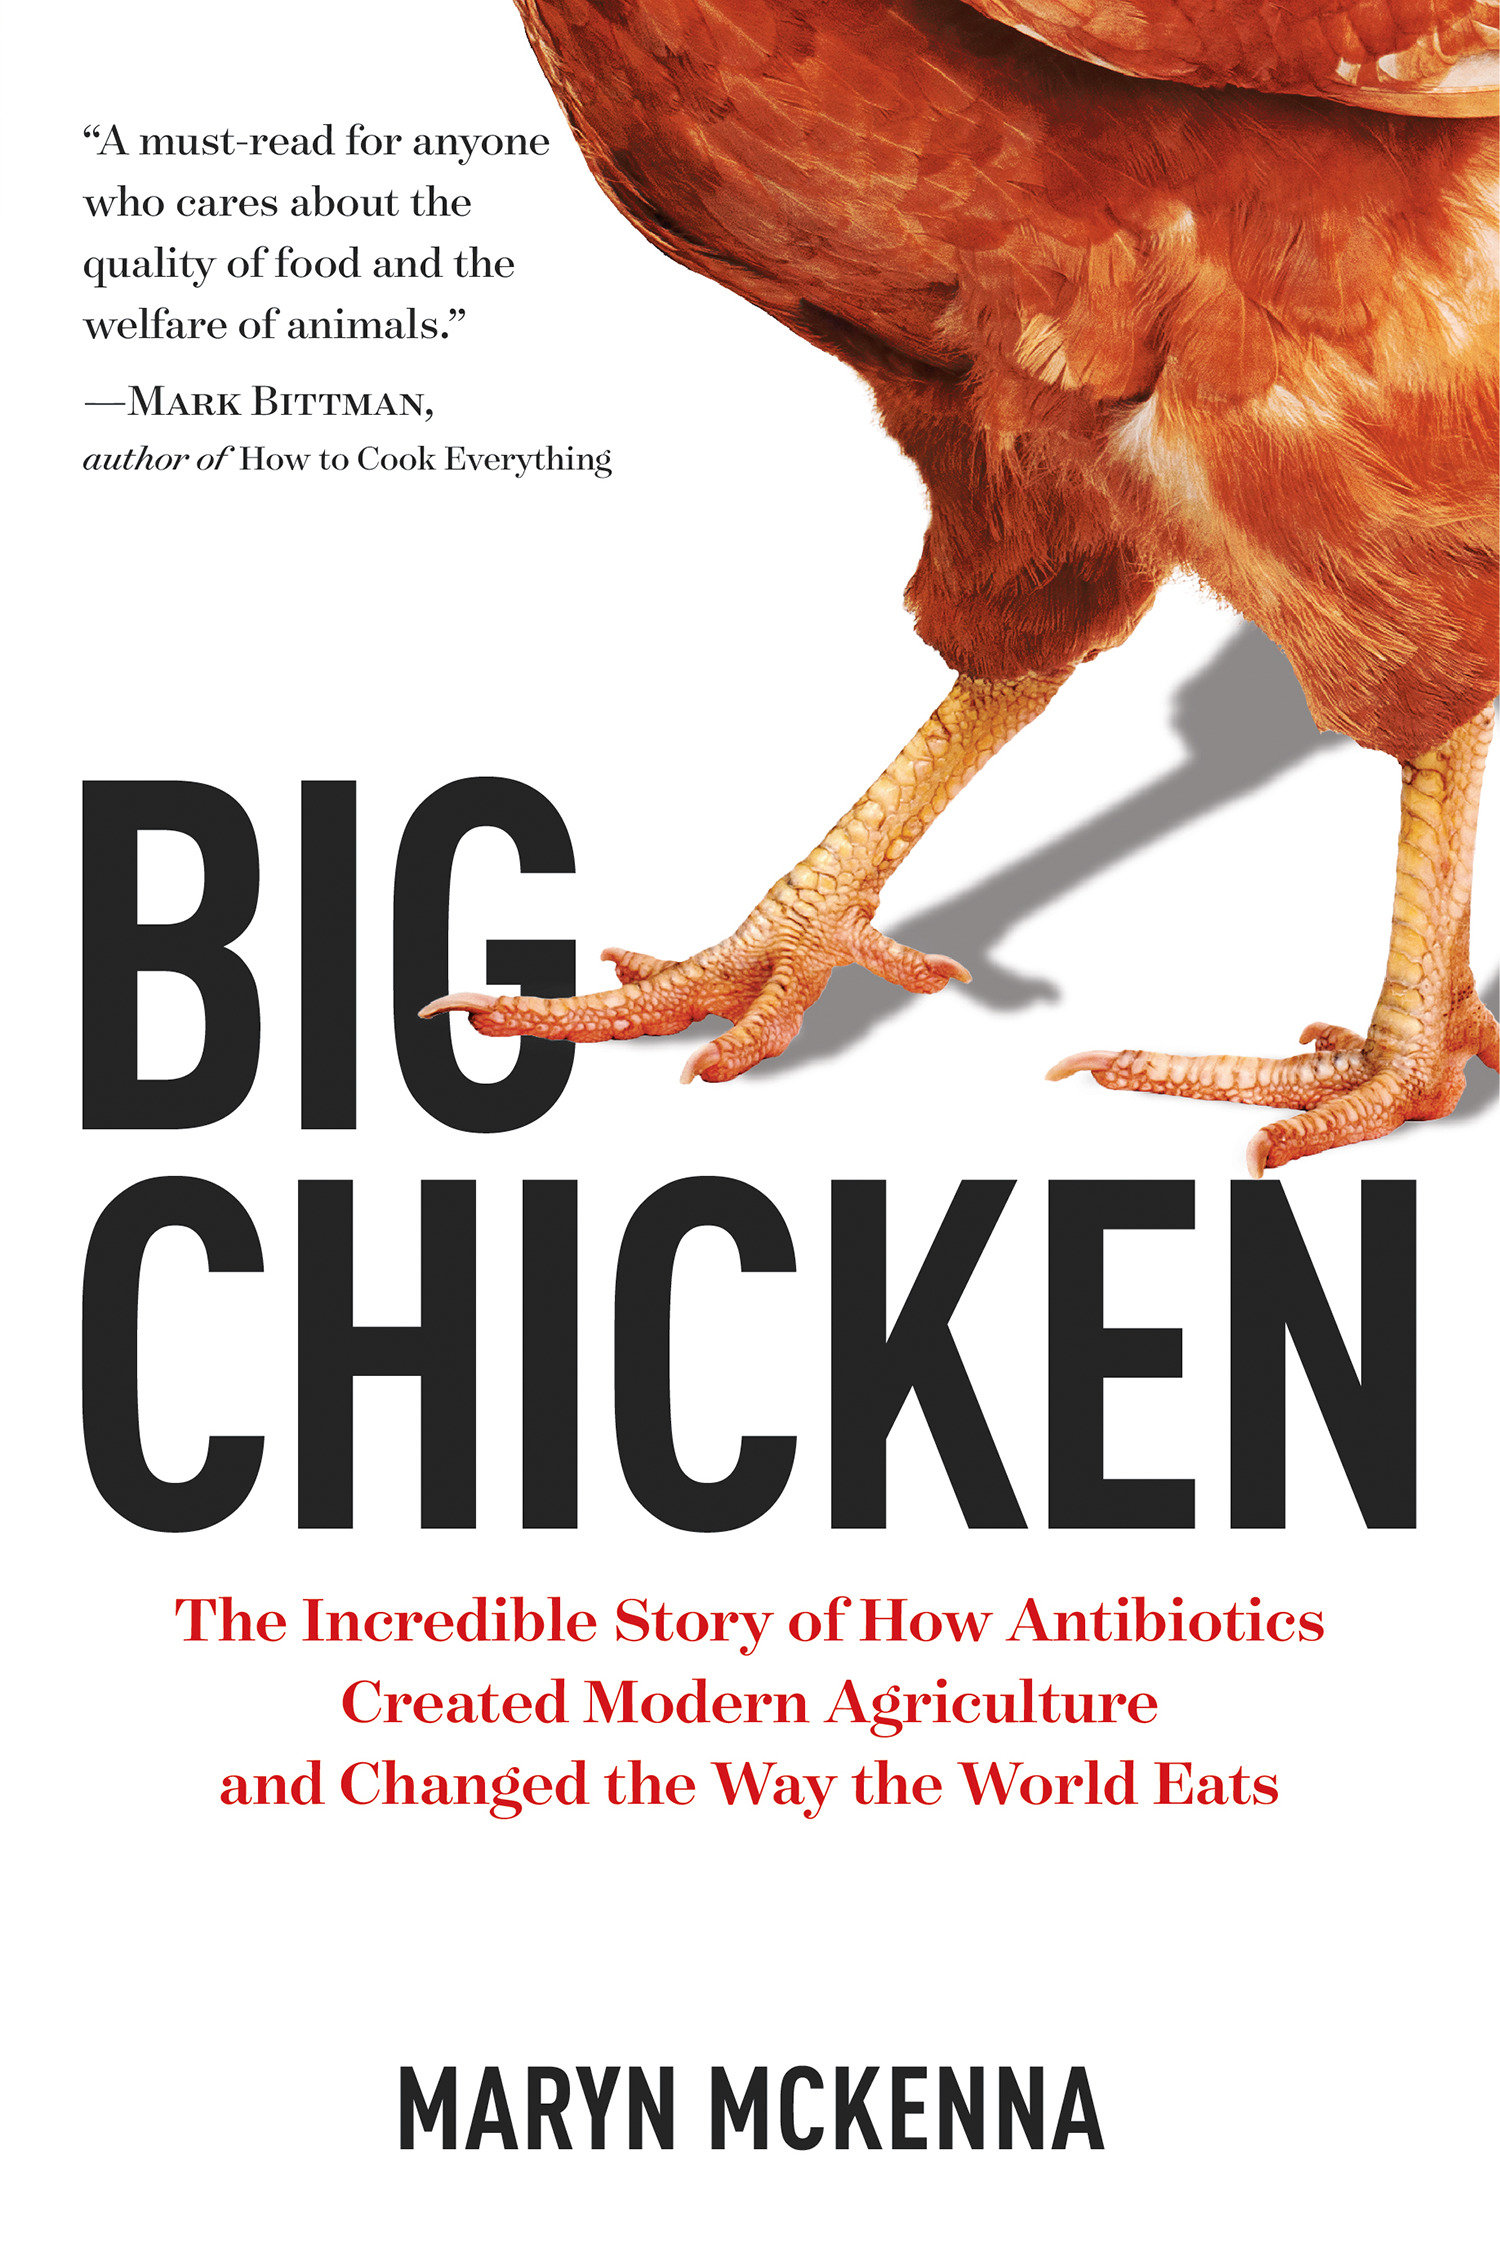 Big Chicken The Incredible Story of How Antibiotics Created Modern Agriculture and Changed the Way the World Eats